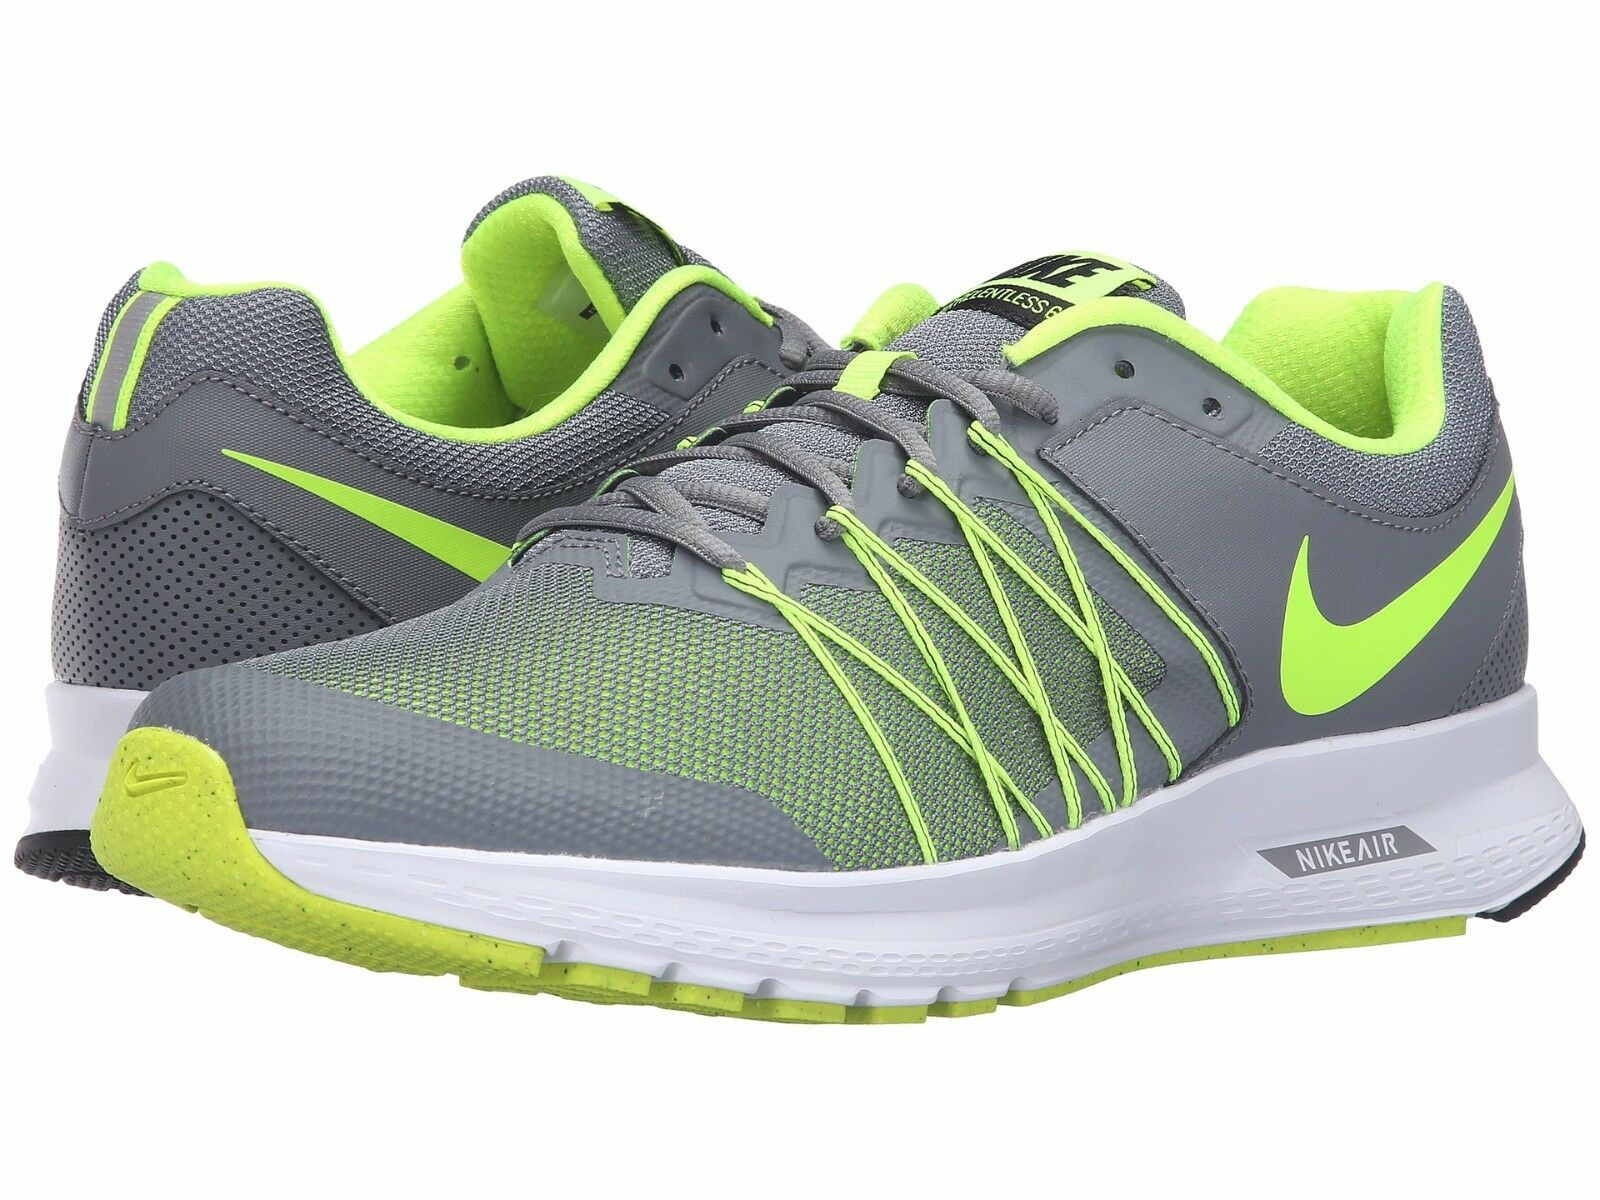 Men's Nike Air Relentless  Sneakers Cool 9 Grey/Volt/White Men's US Size 9 Cool ce5fff